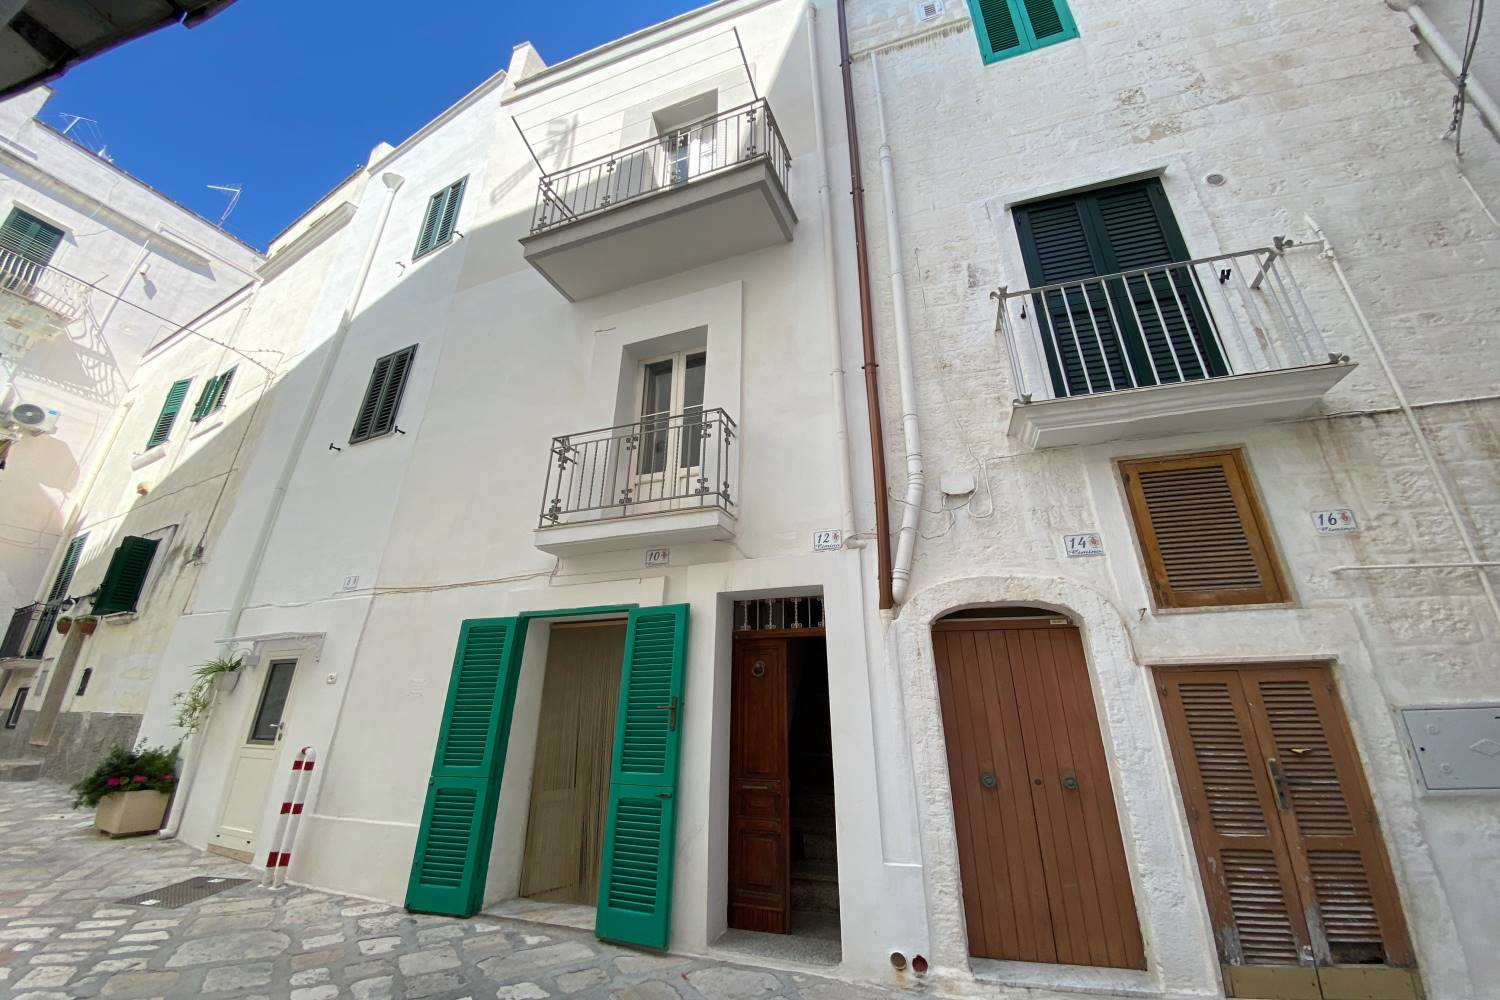 MONOPOLI, Independent Apartment for sale of 70 Sq. mt., Good condition, Heating Non-existent, Energetic class: G, Epi: 165 kwh/m2 year, placed at Ground, composed by: 2 Rooms, Separate kitchen, 2